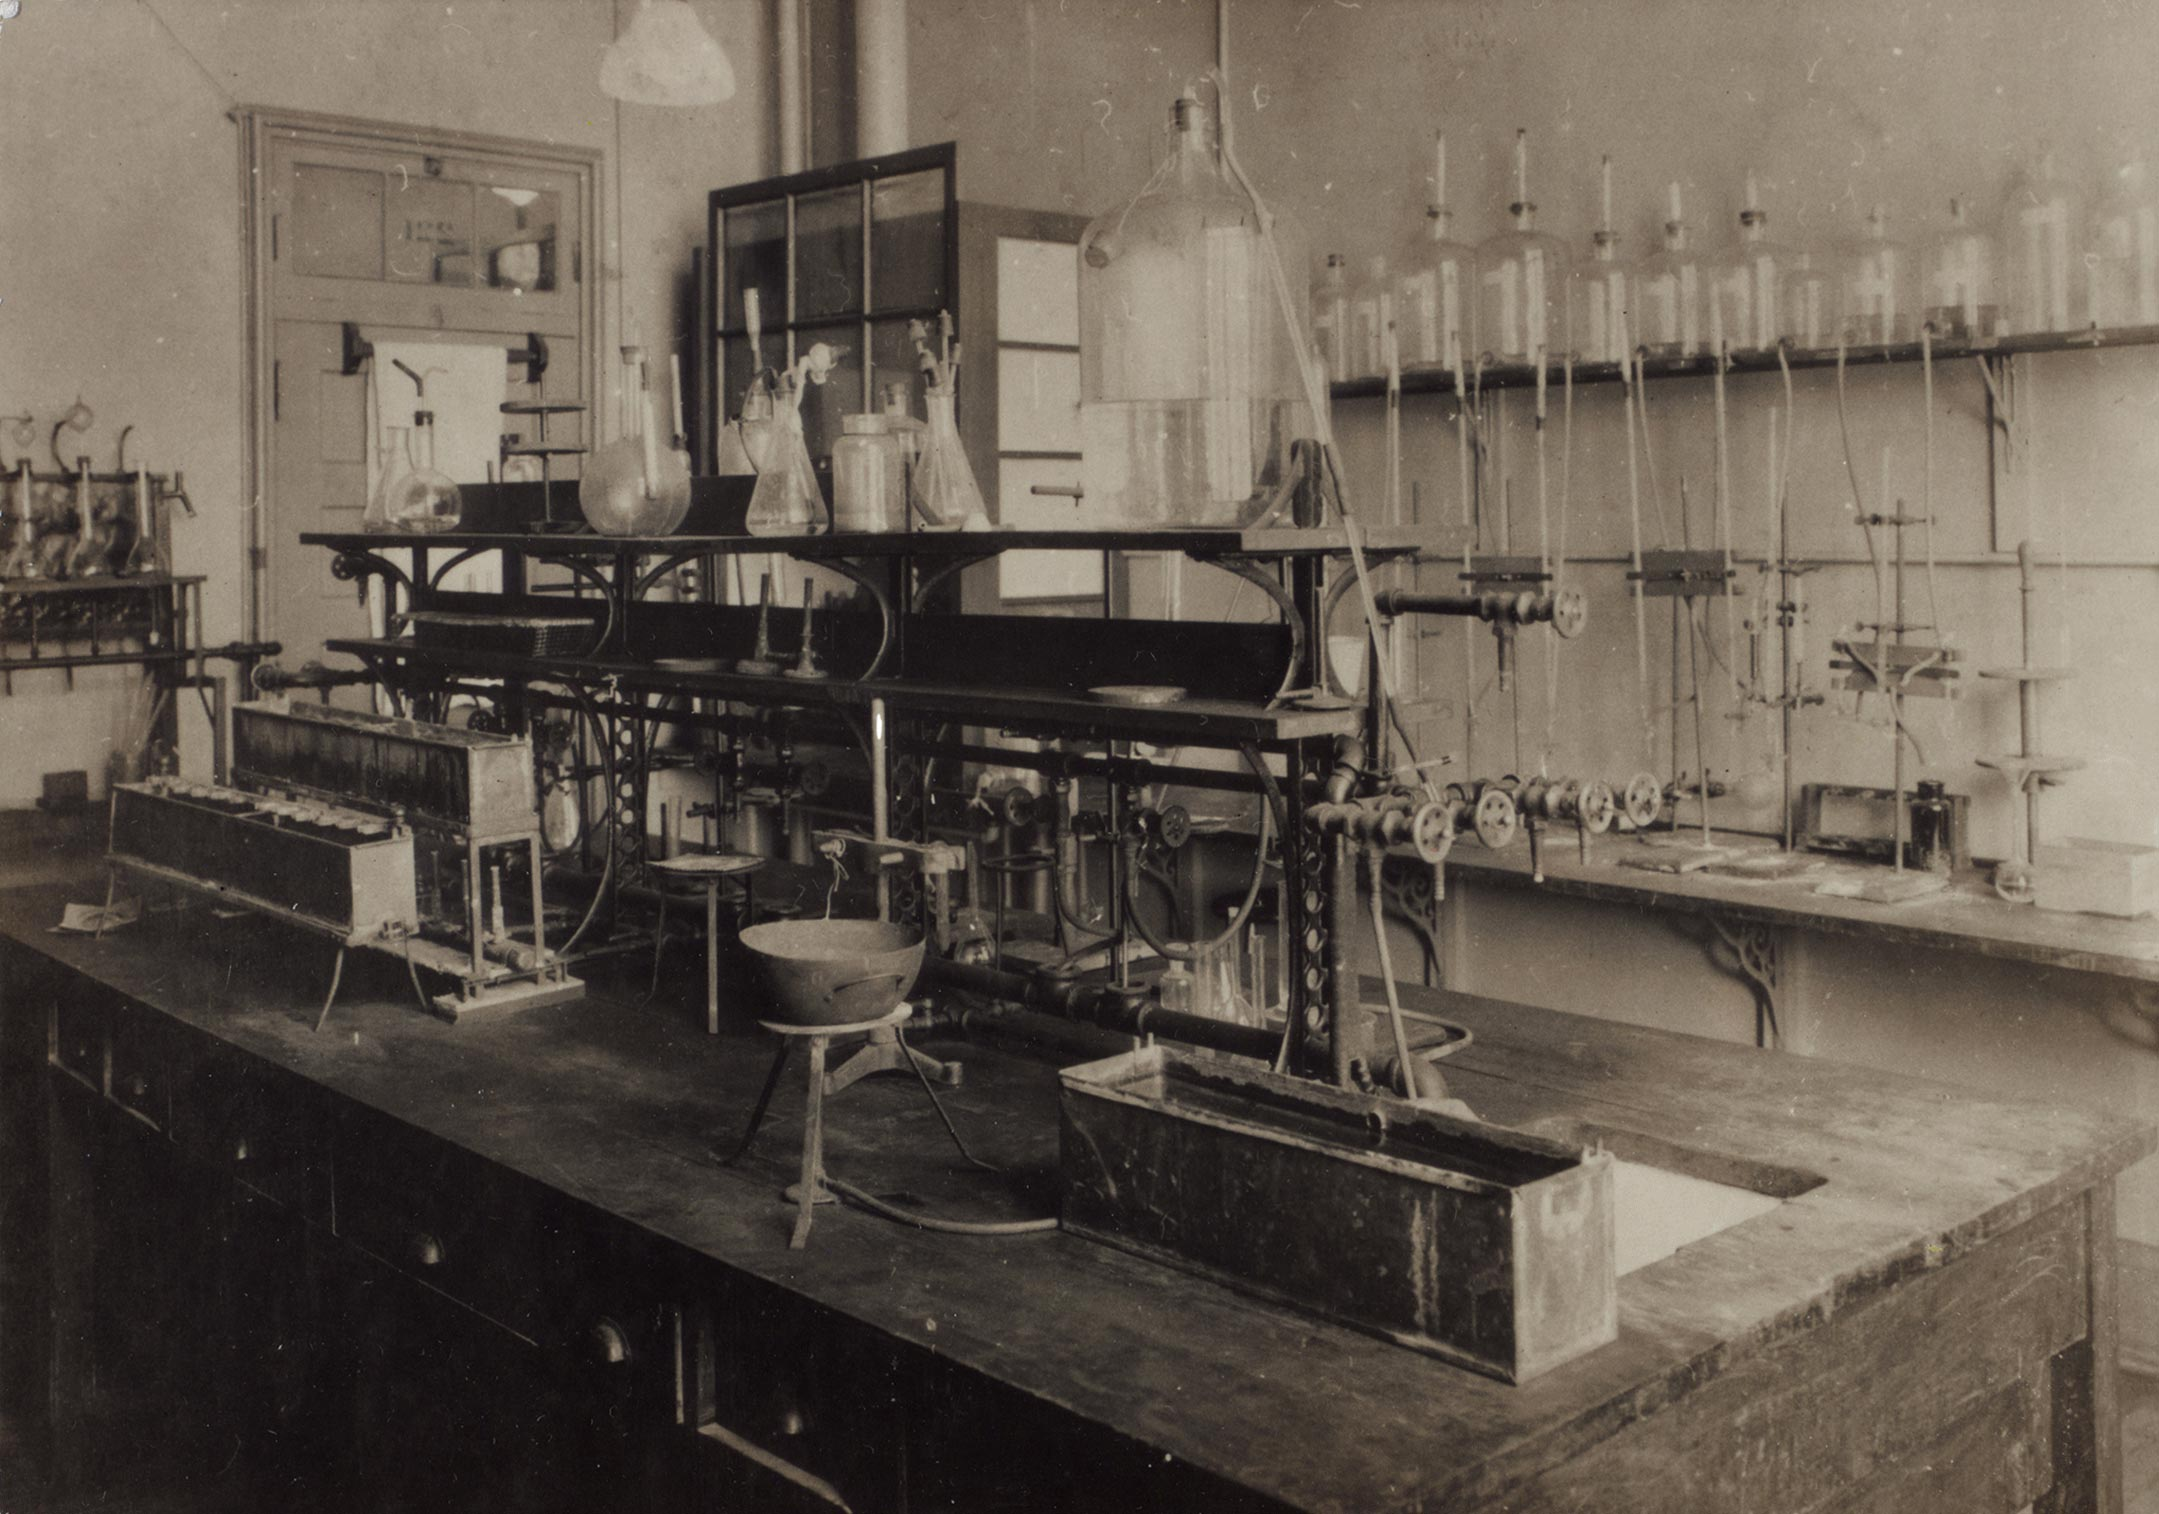 The lab where insulin was discovered: a wooden workbench filled with instruments, and a wall lined with bottles and tubing.